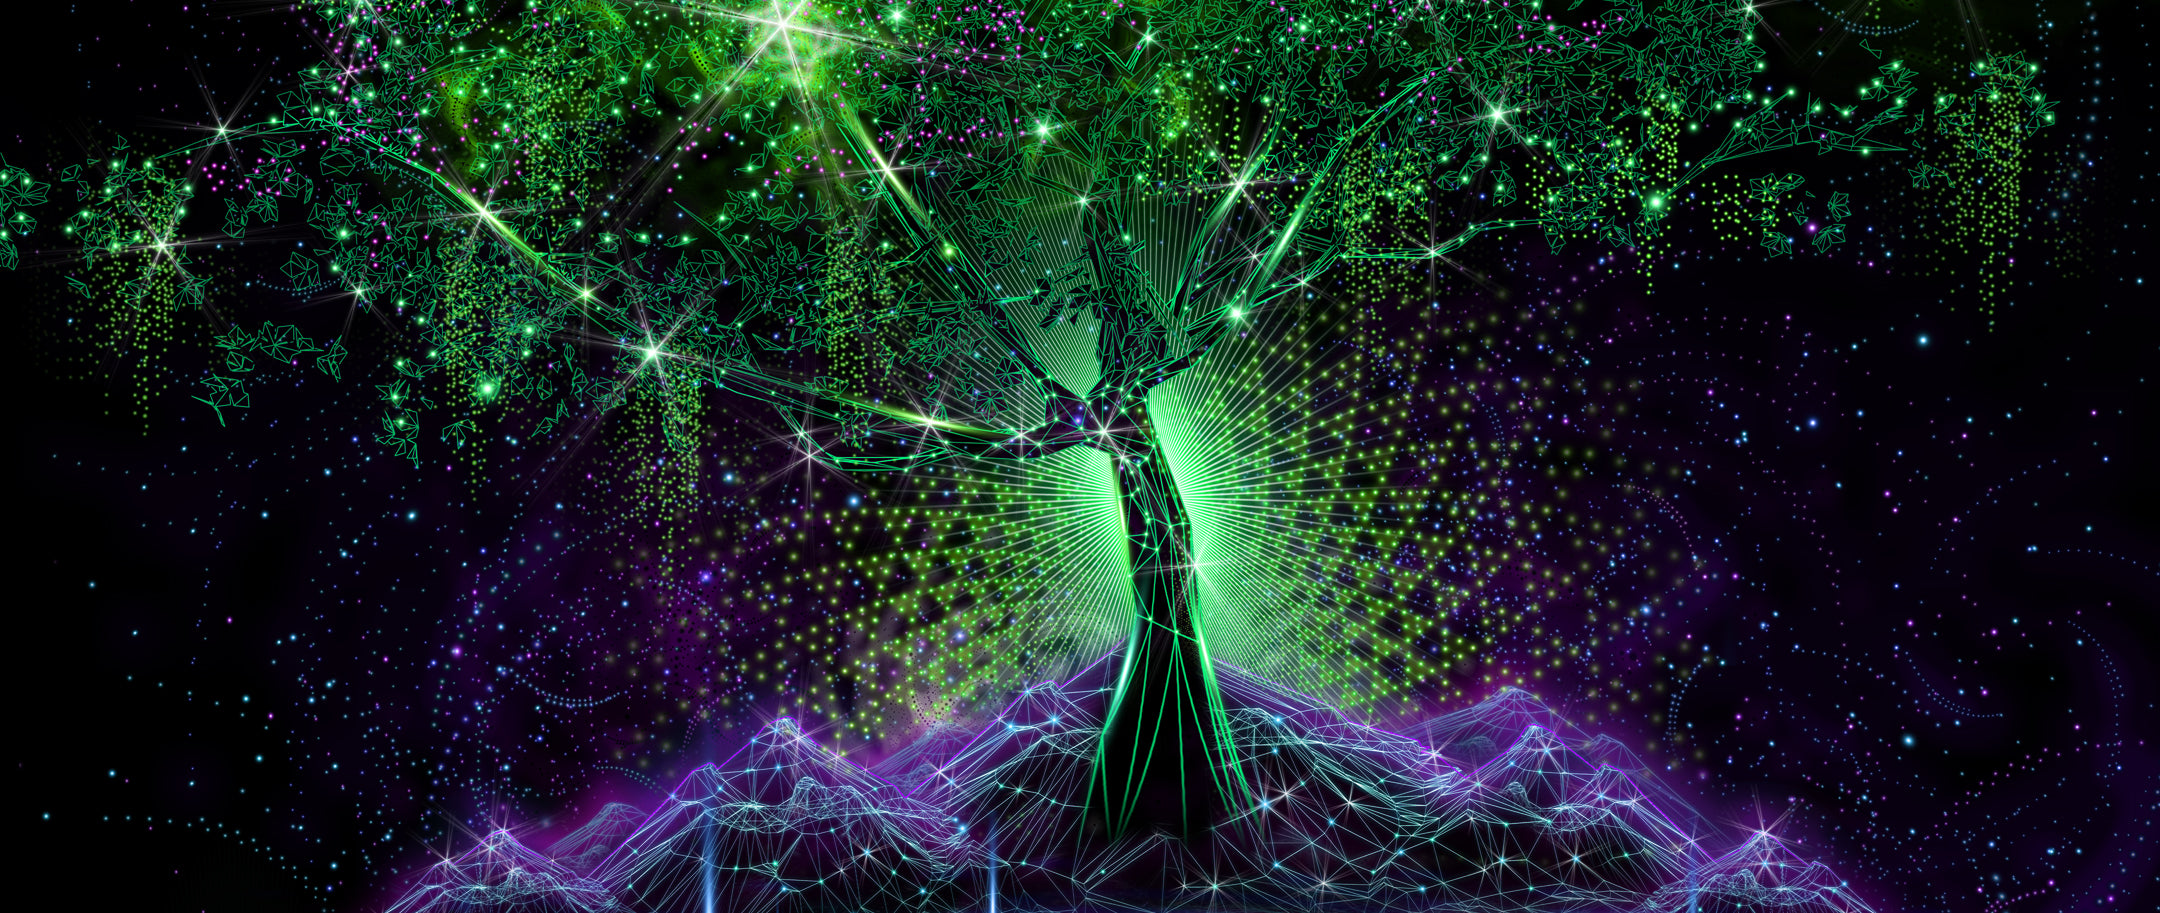 Tree of Life: Psychedelic Art inspired by the fabled: Kalpavriksha